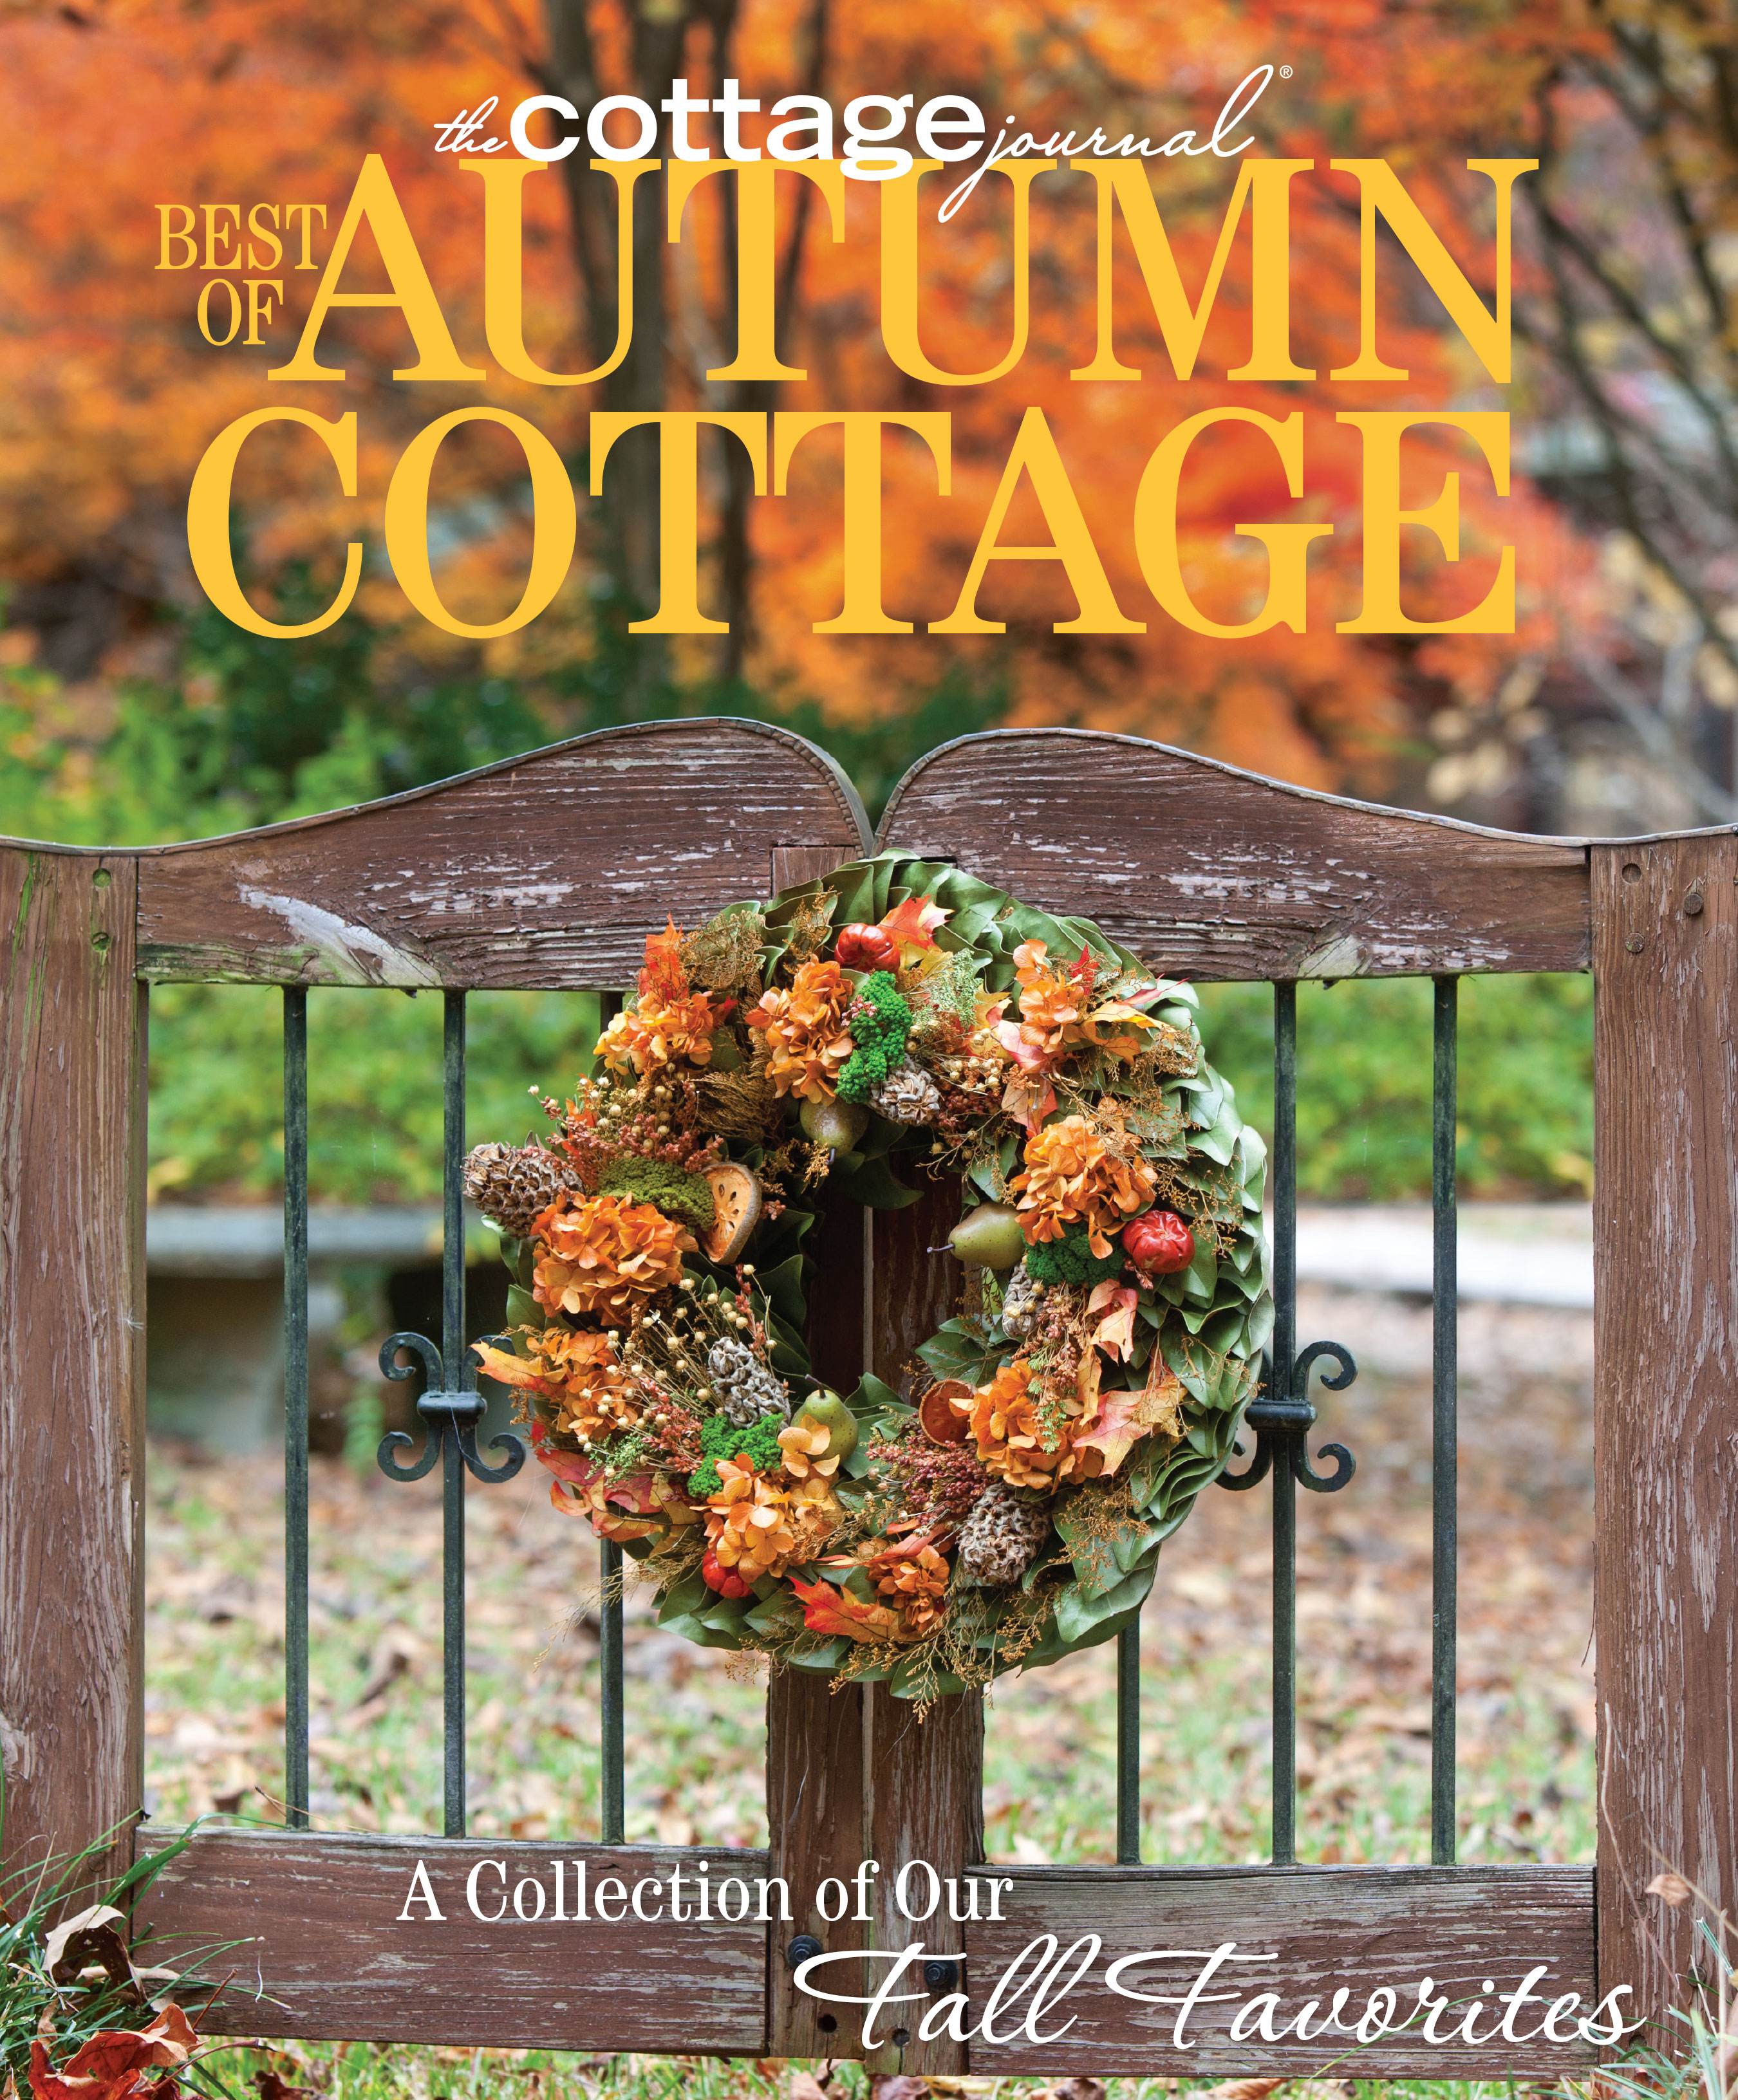 Best of Autumn Cottage 2017